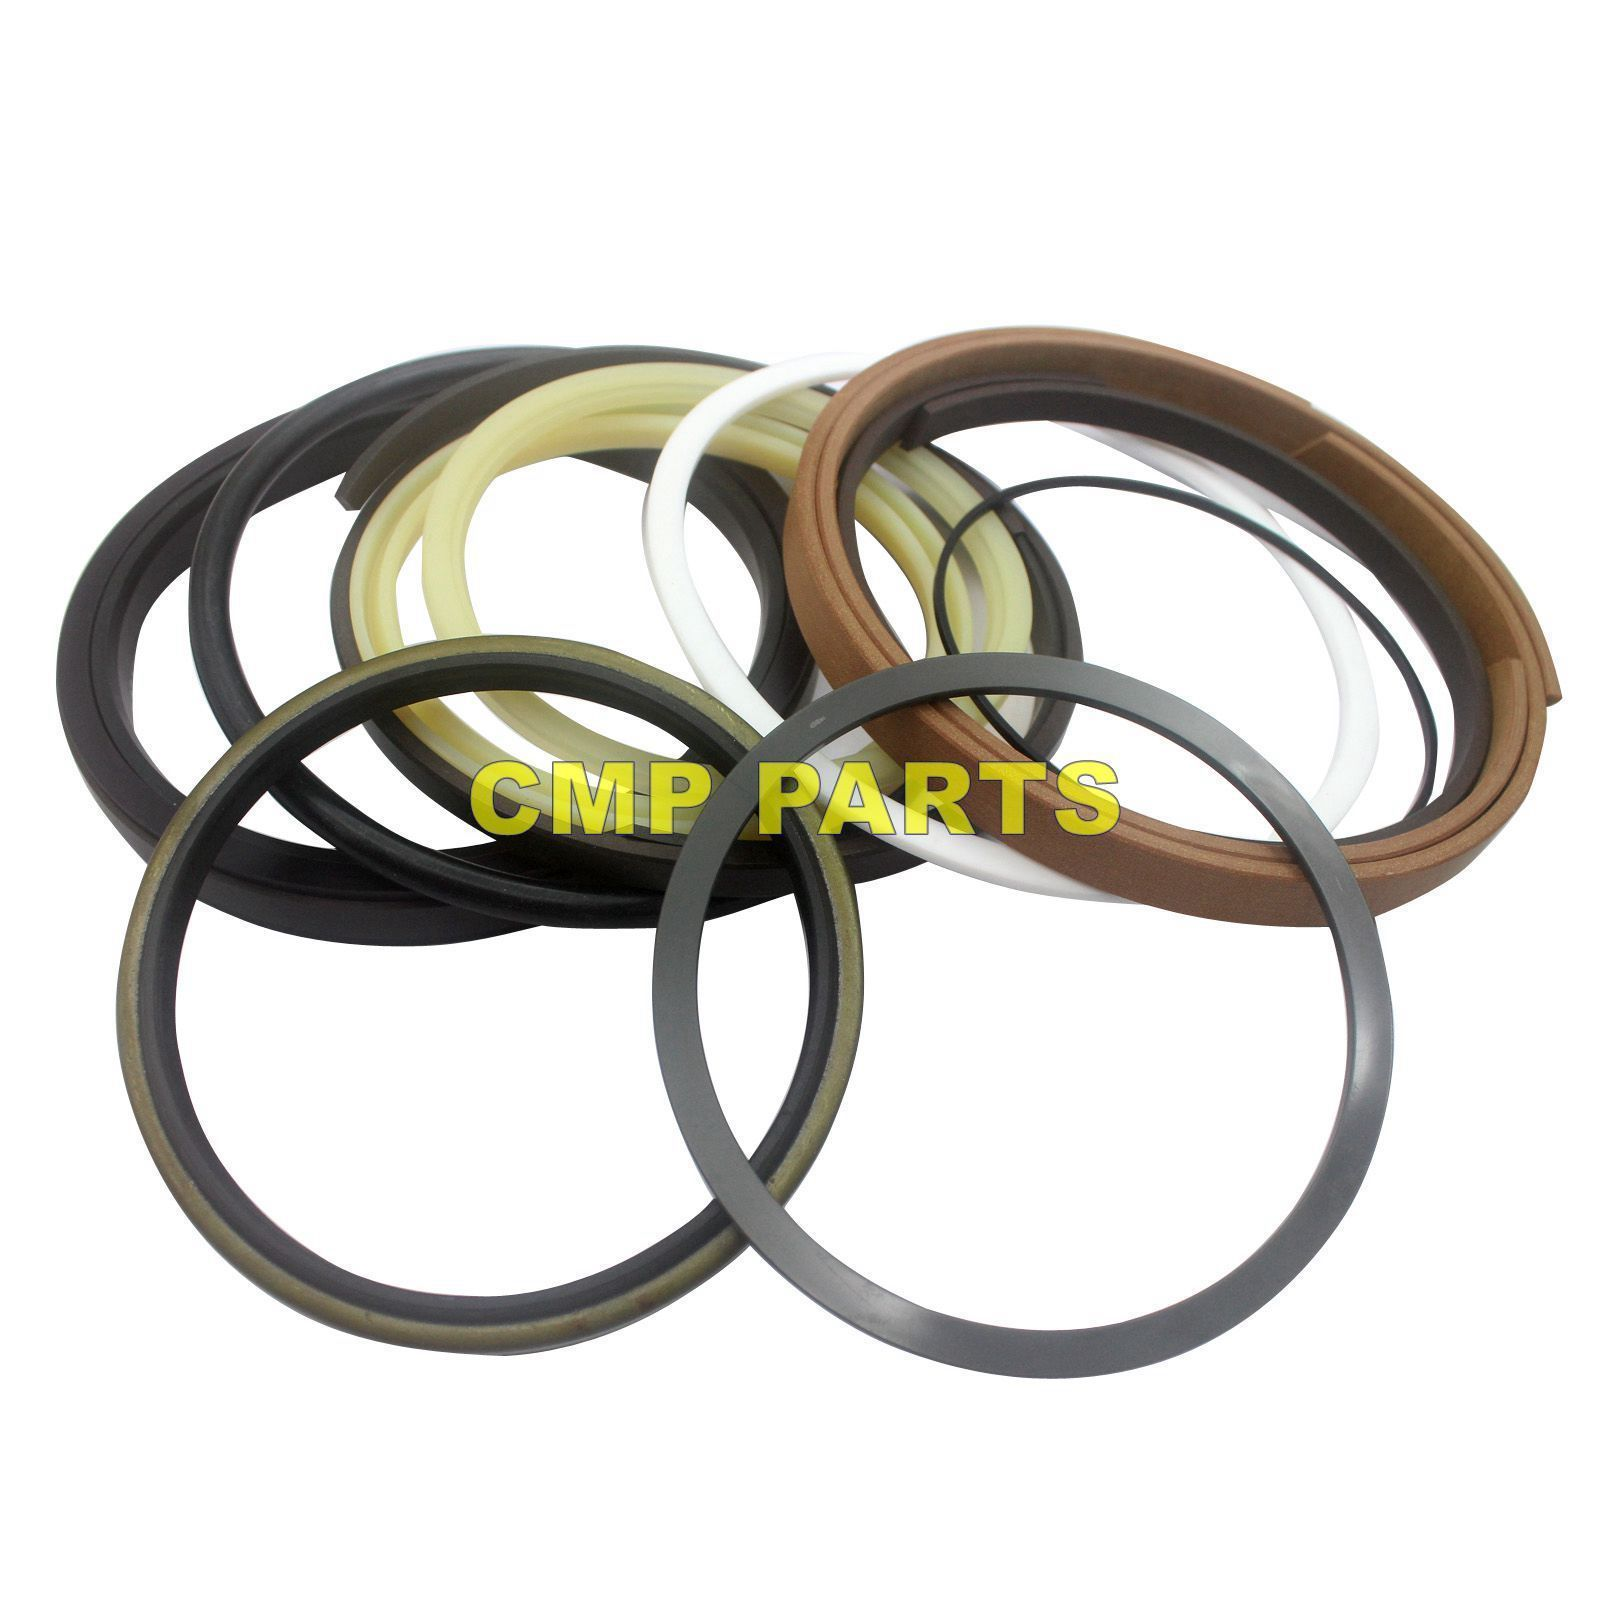 Primary image for 4206019 Hitachi EX200-1 Arm Cylinder Repair Seal Kit